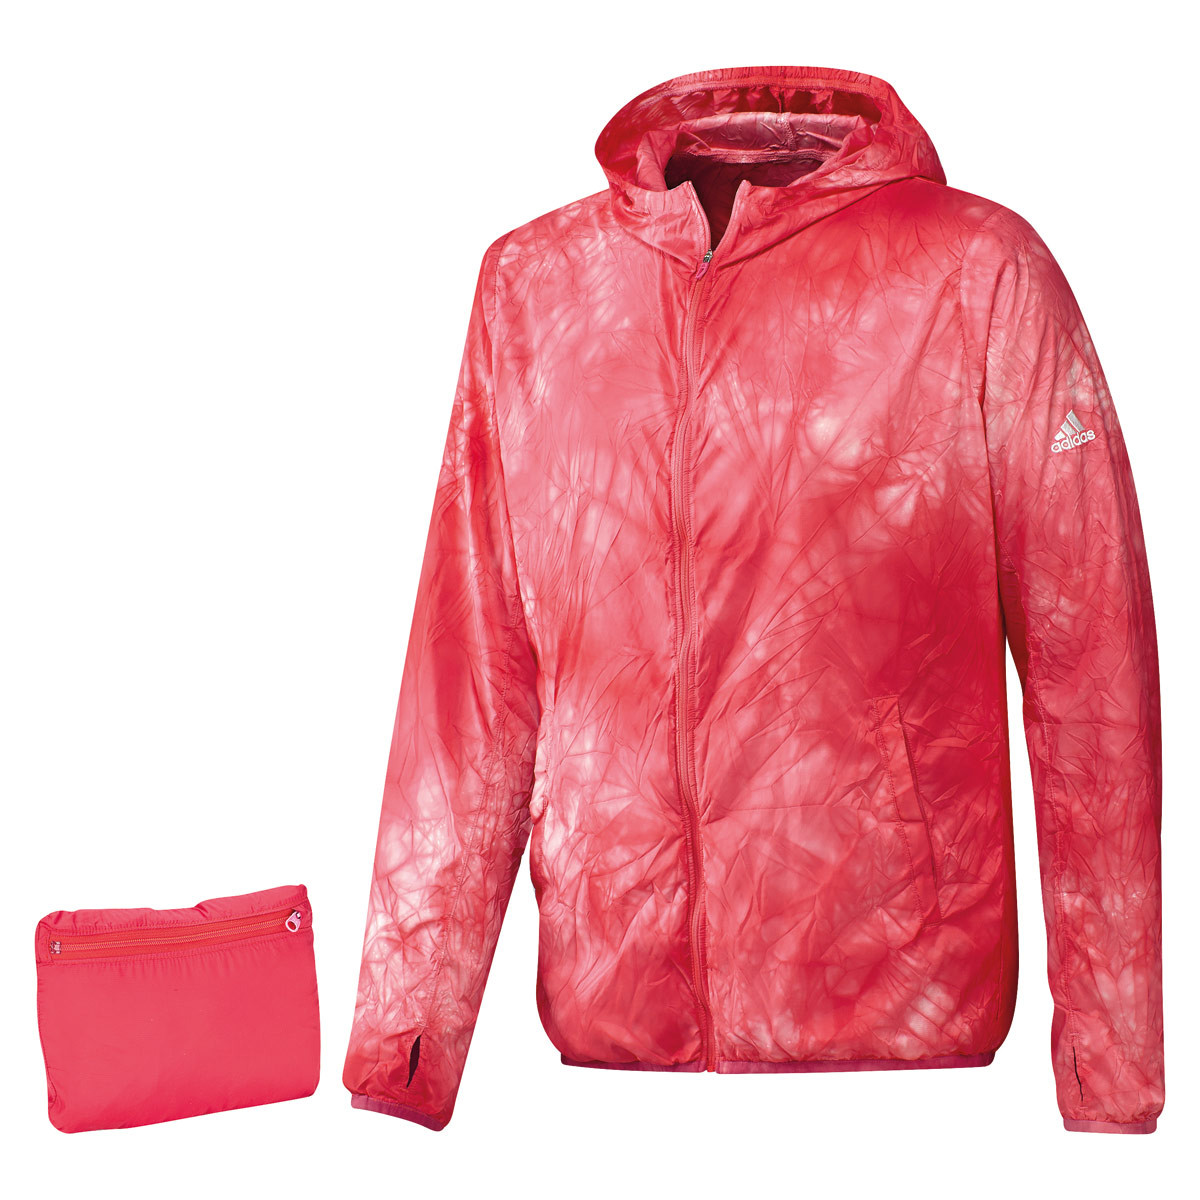 5af5914aa5 adidas Kanoi Run Packable Dye Jacket - Running jackets for Men - Red